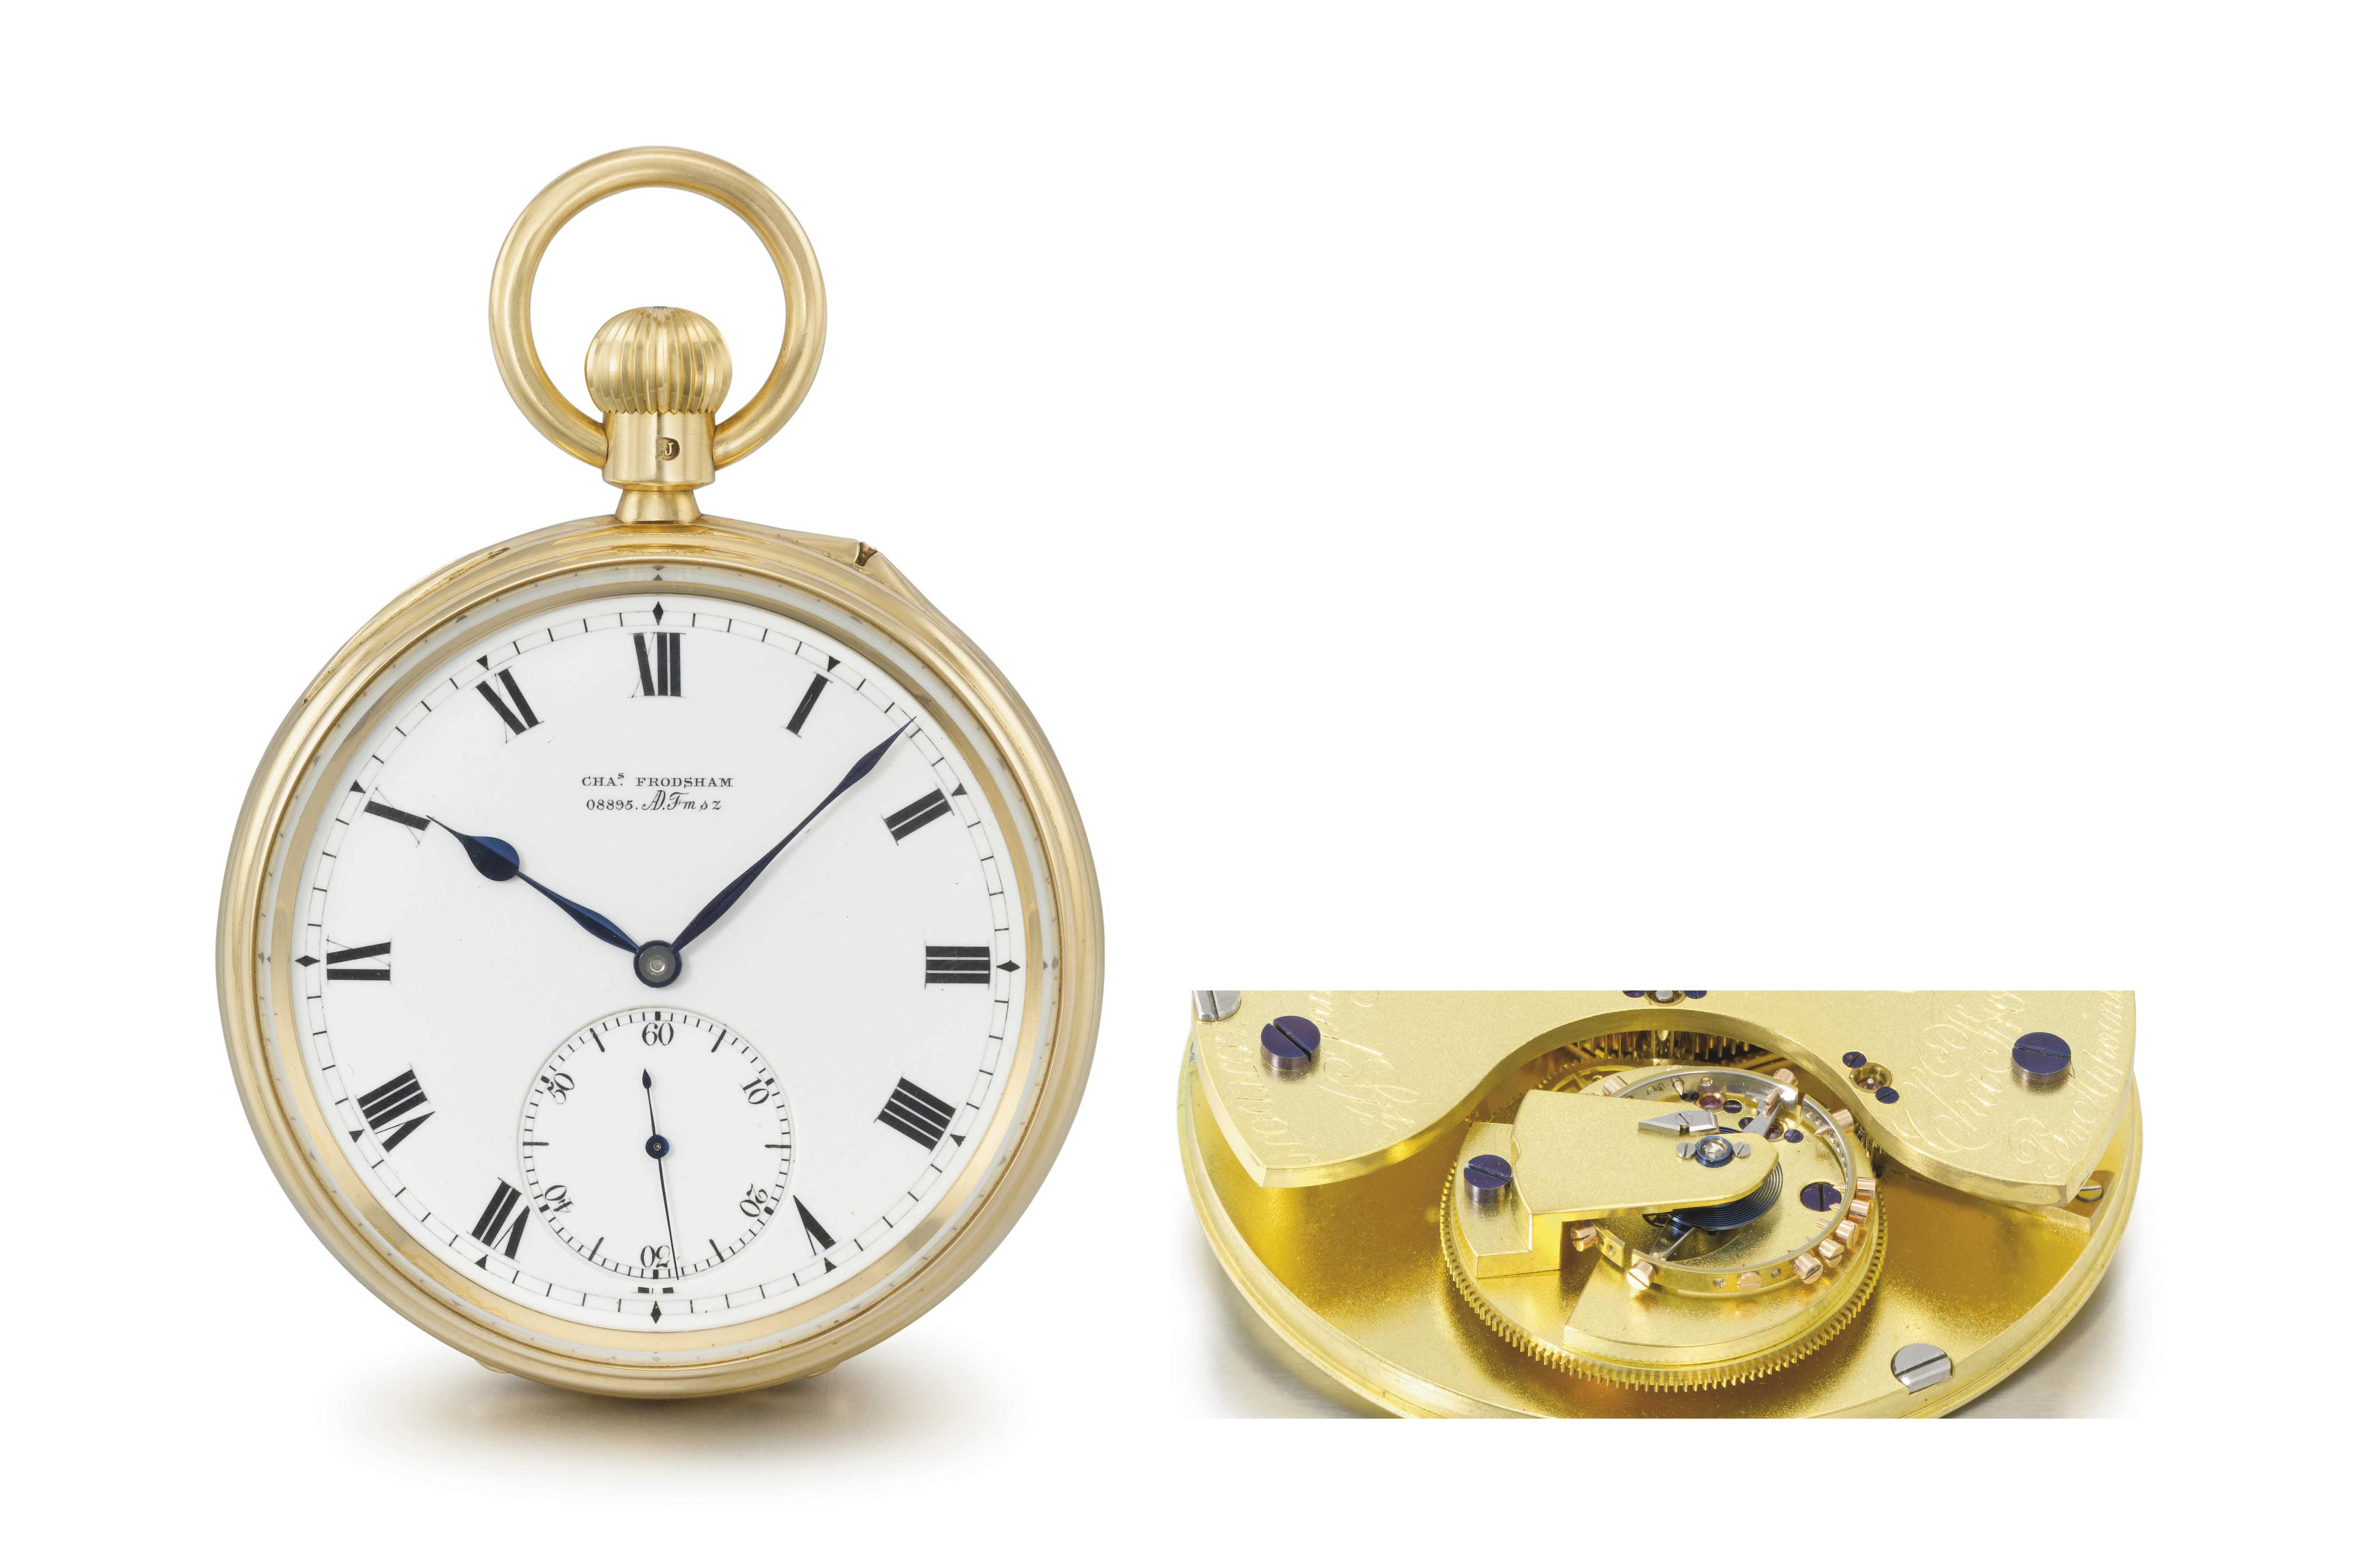 Charles Frodsham. A very fine, rare and important 18K gold openface keyless lever watch with Robert Benson North's patented twelve minute flying tourbillon